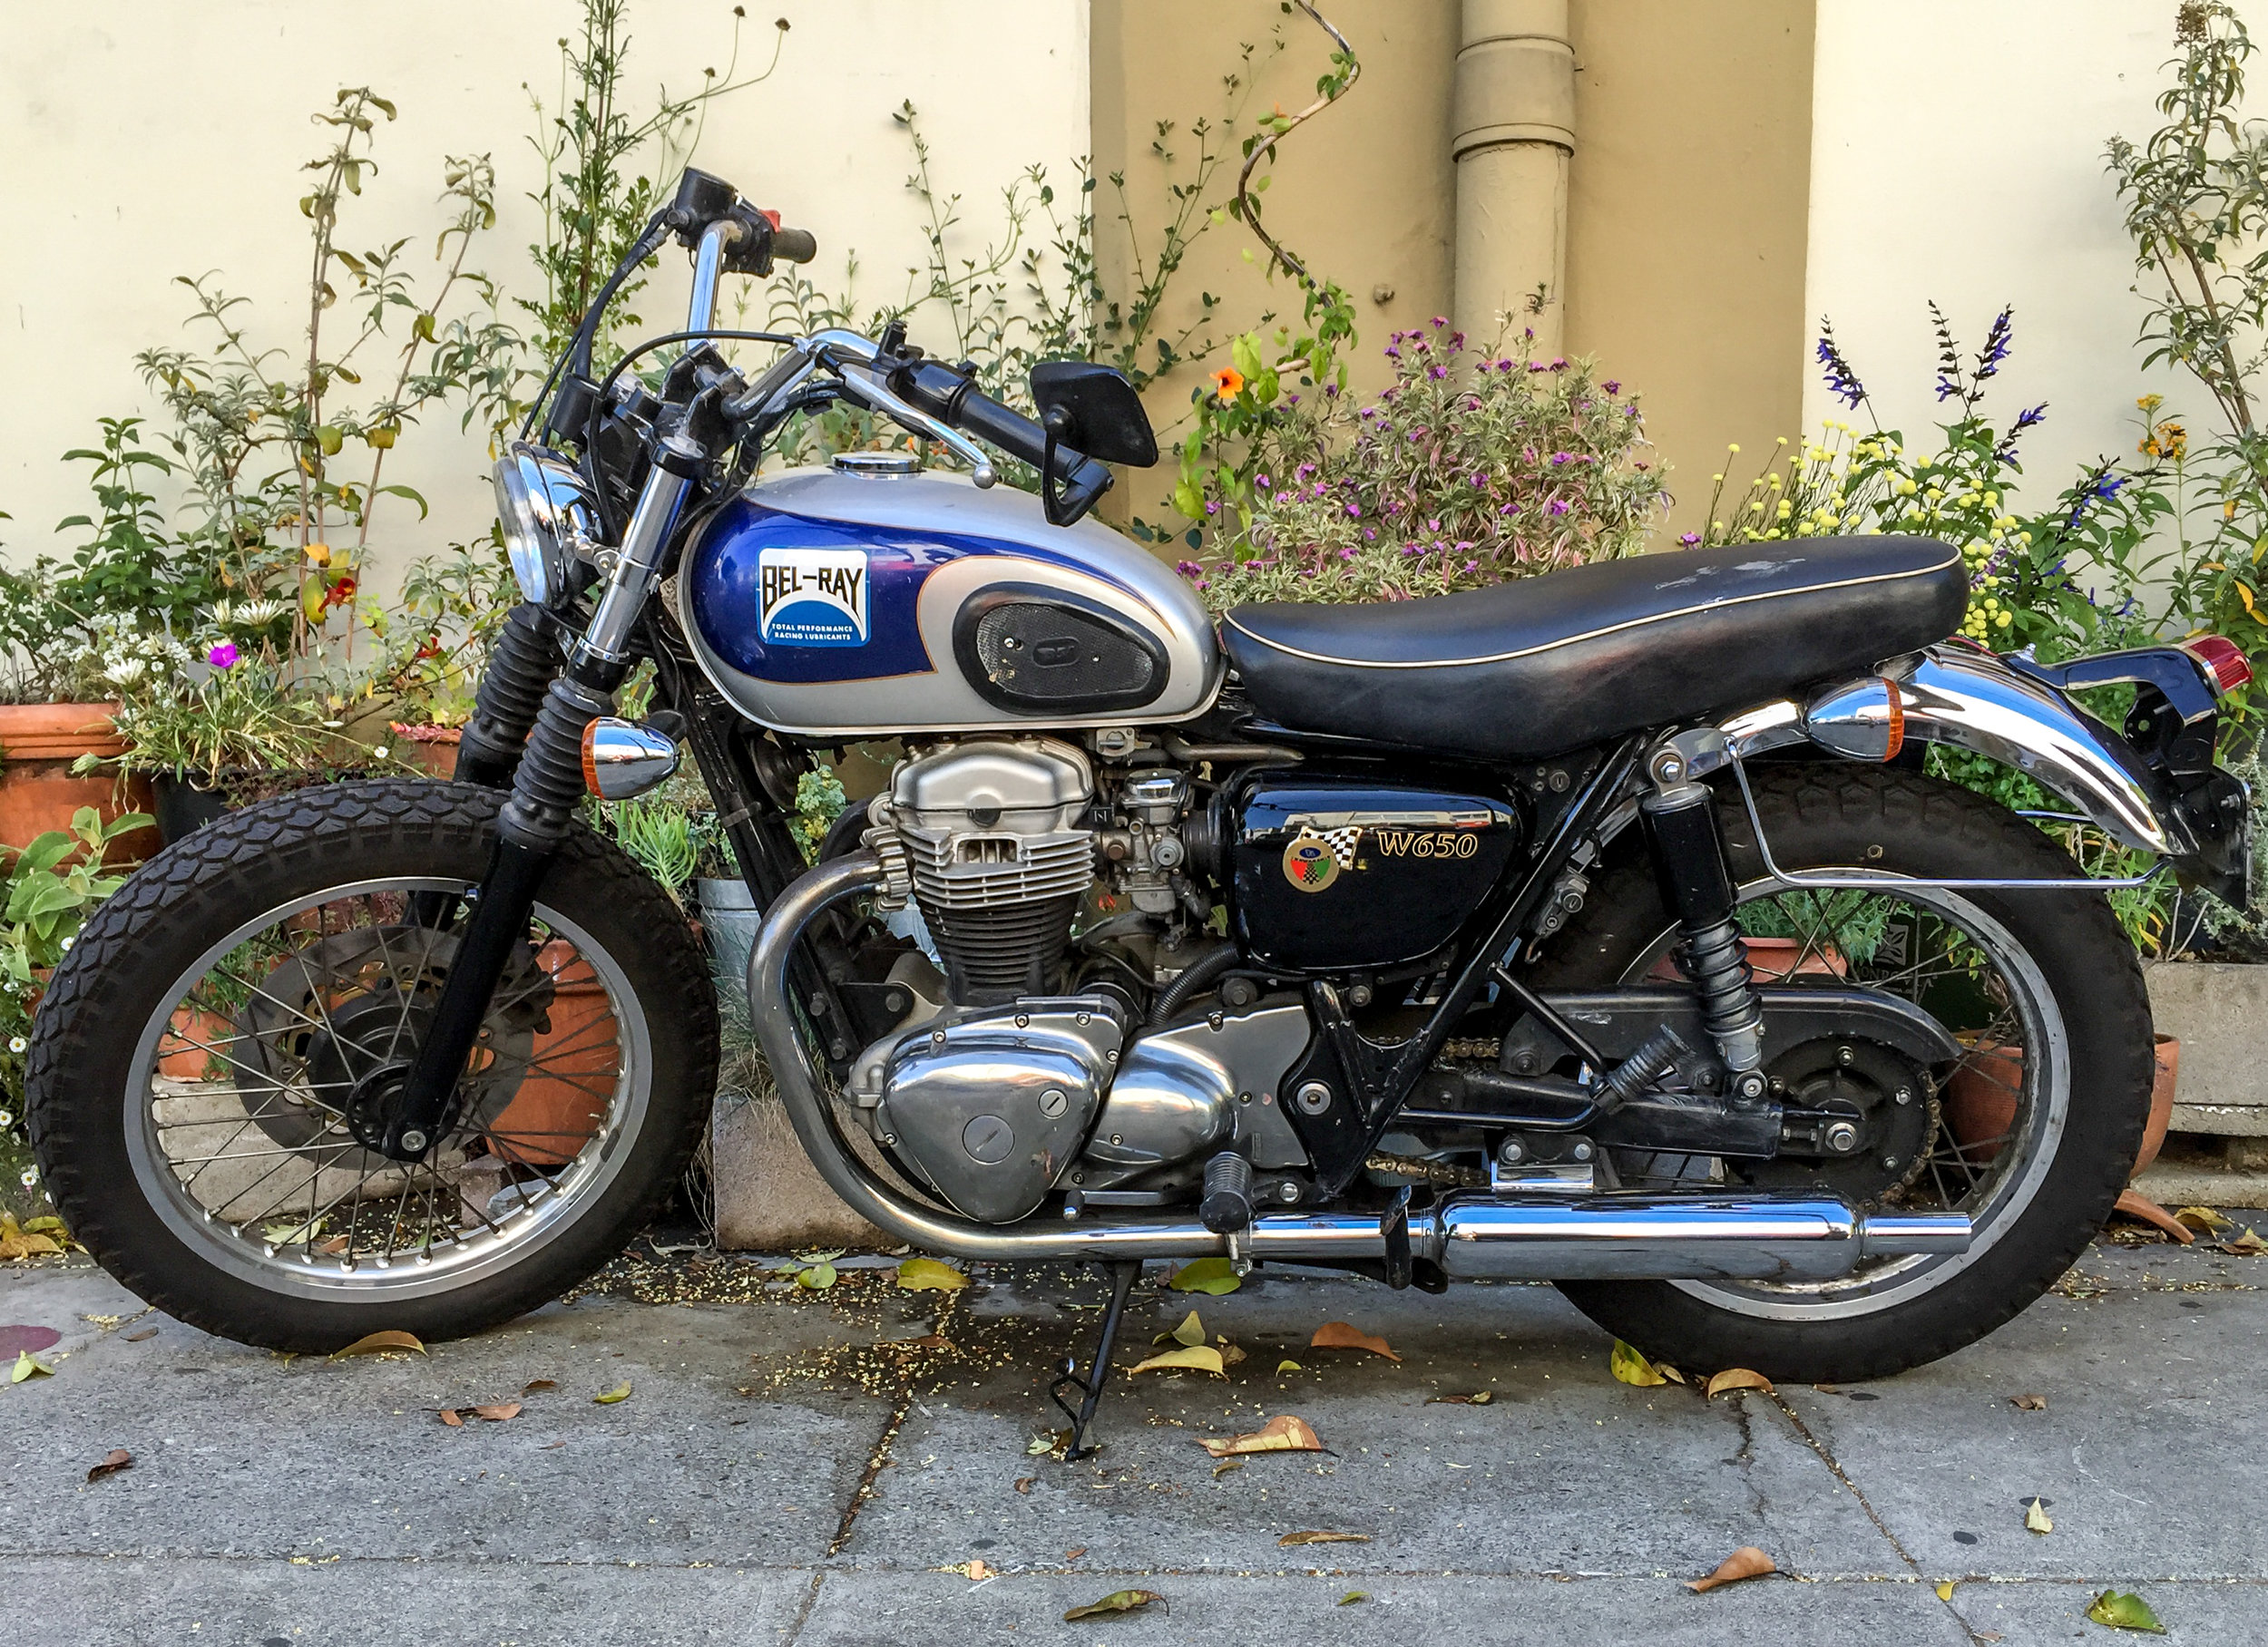 Kawasaki W650 I spotted recently in Berkeley California while visiting Jenny & Mose